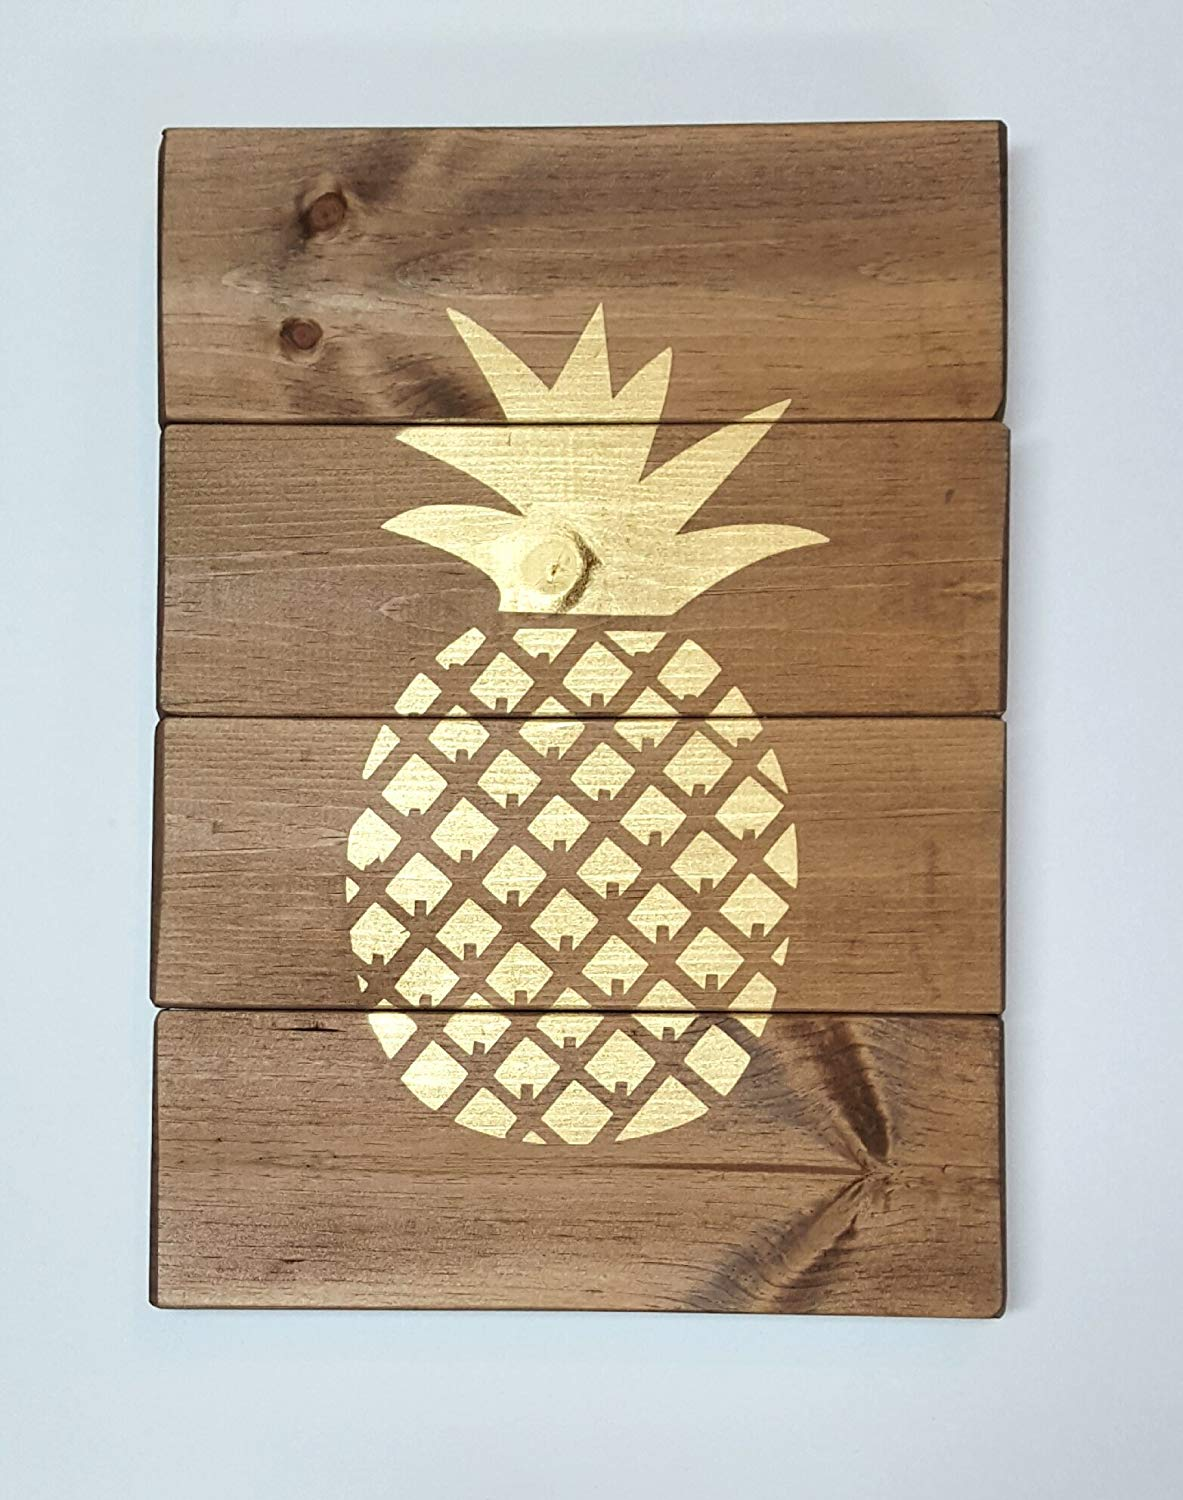 Rustic pallet pineapple wood sign, Wooden signs for home, Wood beach signs, Beach wall art, Wood pineapple, Rustic sign for home, Housewarming sign, Welcome sign wood, Country home decor